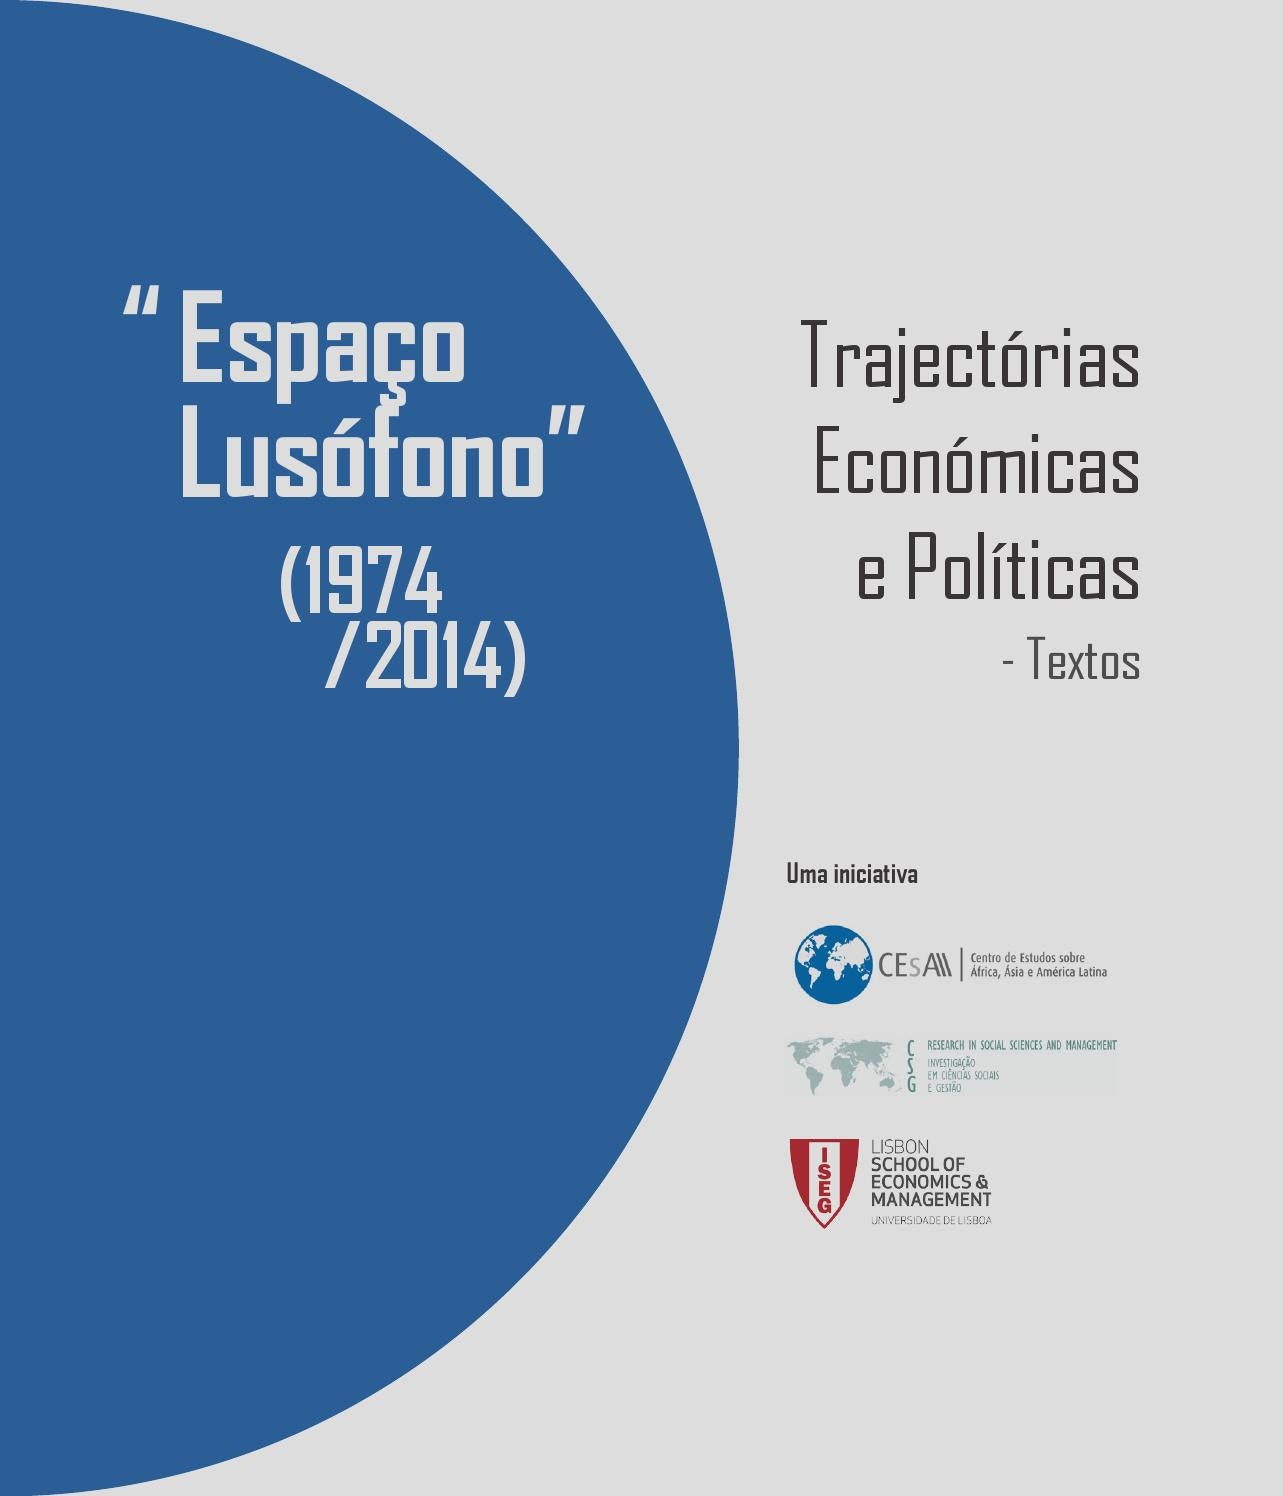 Espao lusfono 19742014 trajectrias econmicas e polticas espao lusfono 19742014 trajectrias econmicas e polticas textos by cesa isegulisboa issuu fandeluxe Image collections